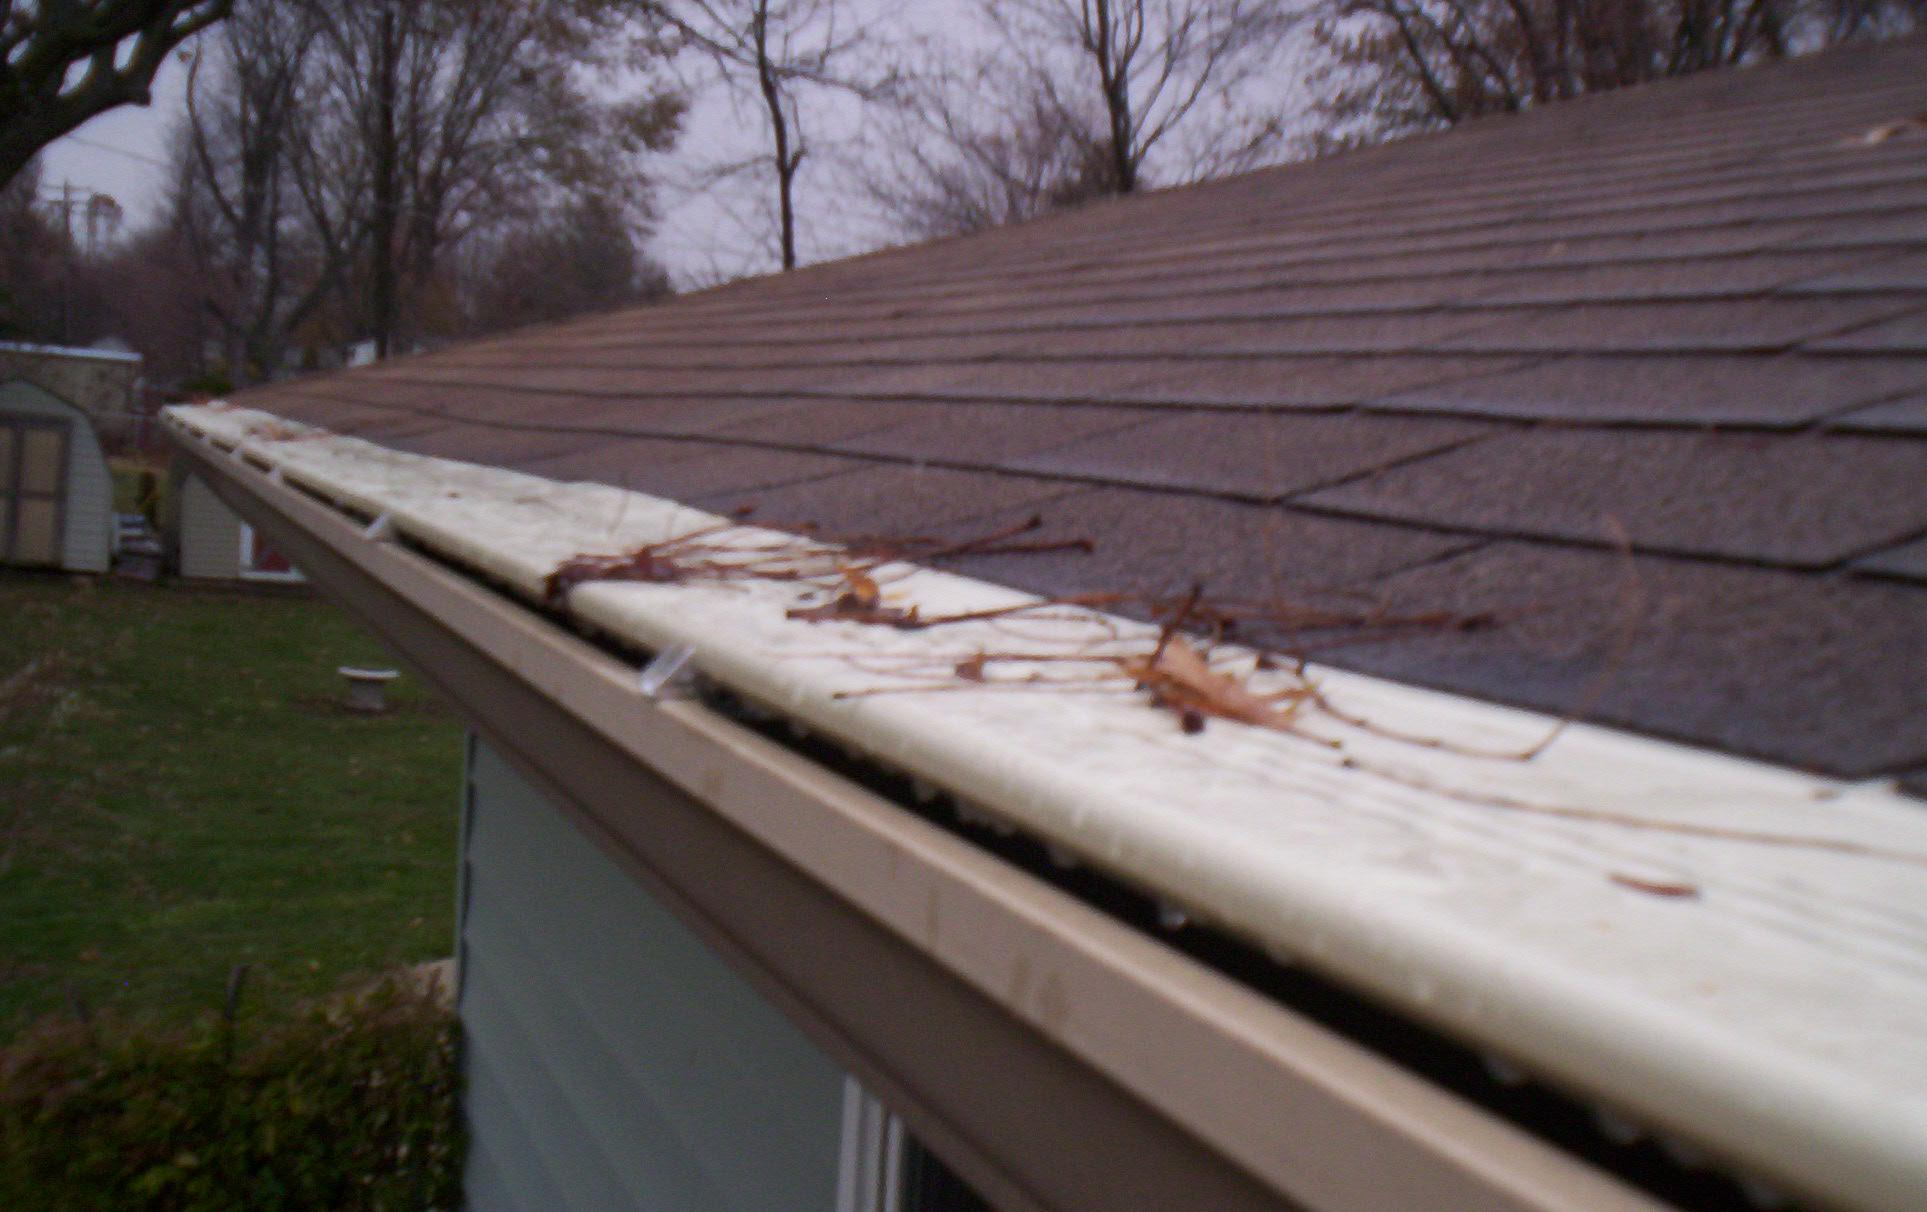 Original Gutter Cover prevents debris from entering your gutters.